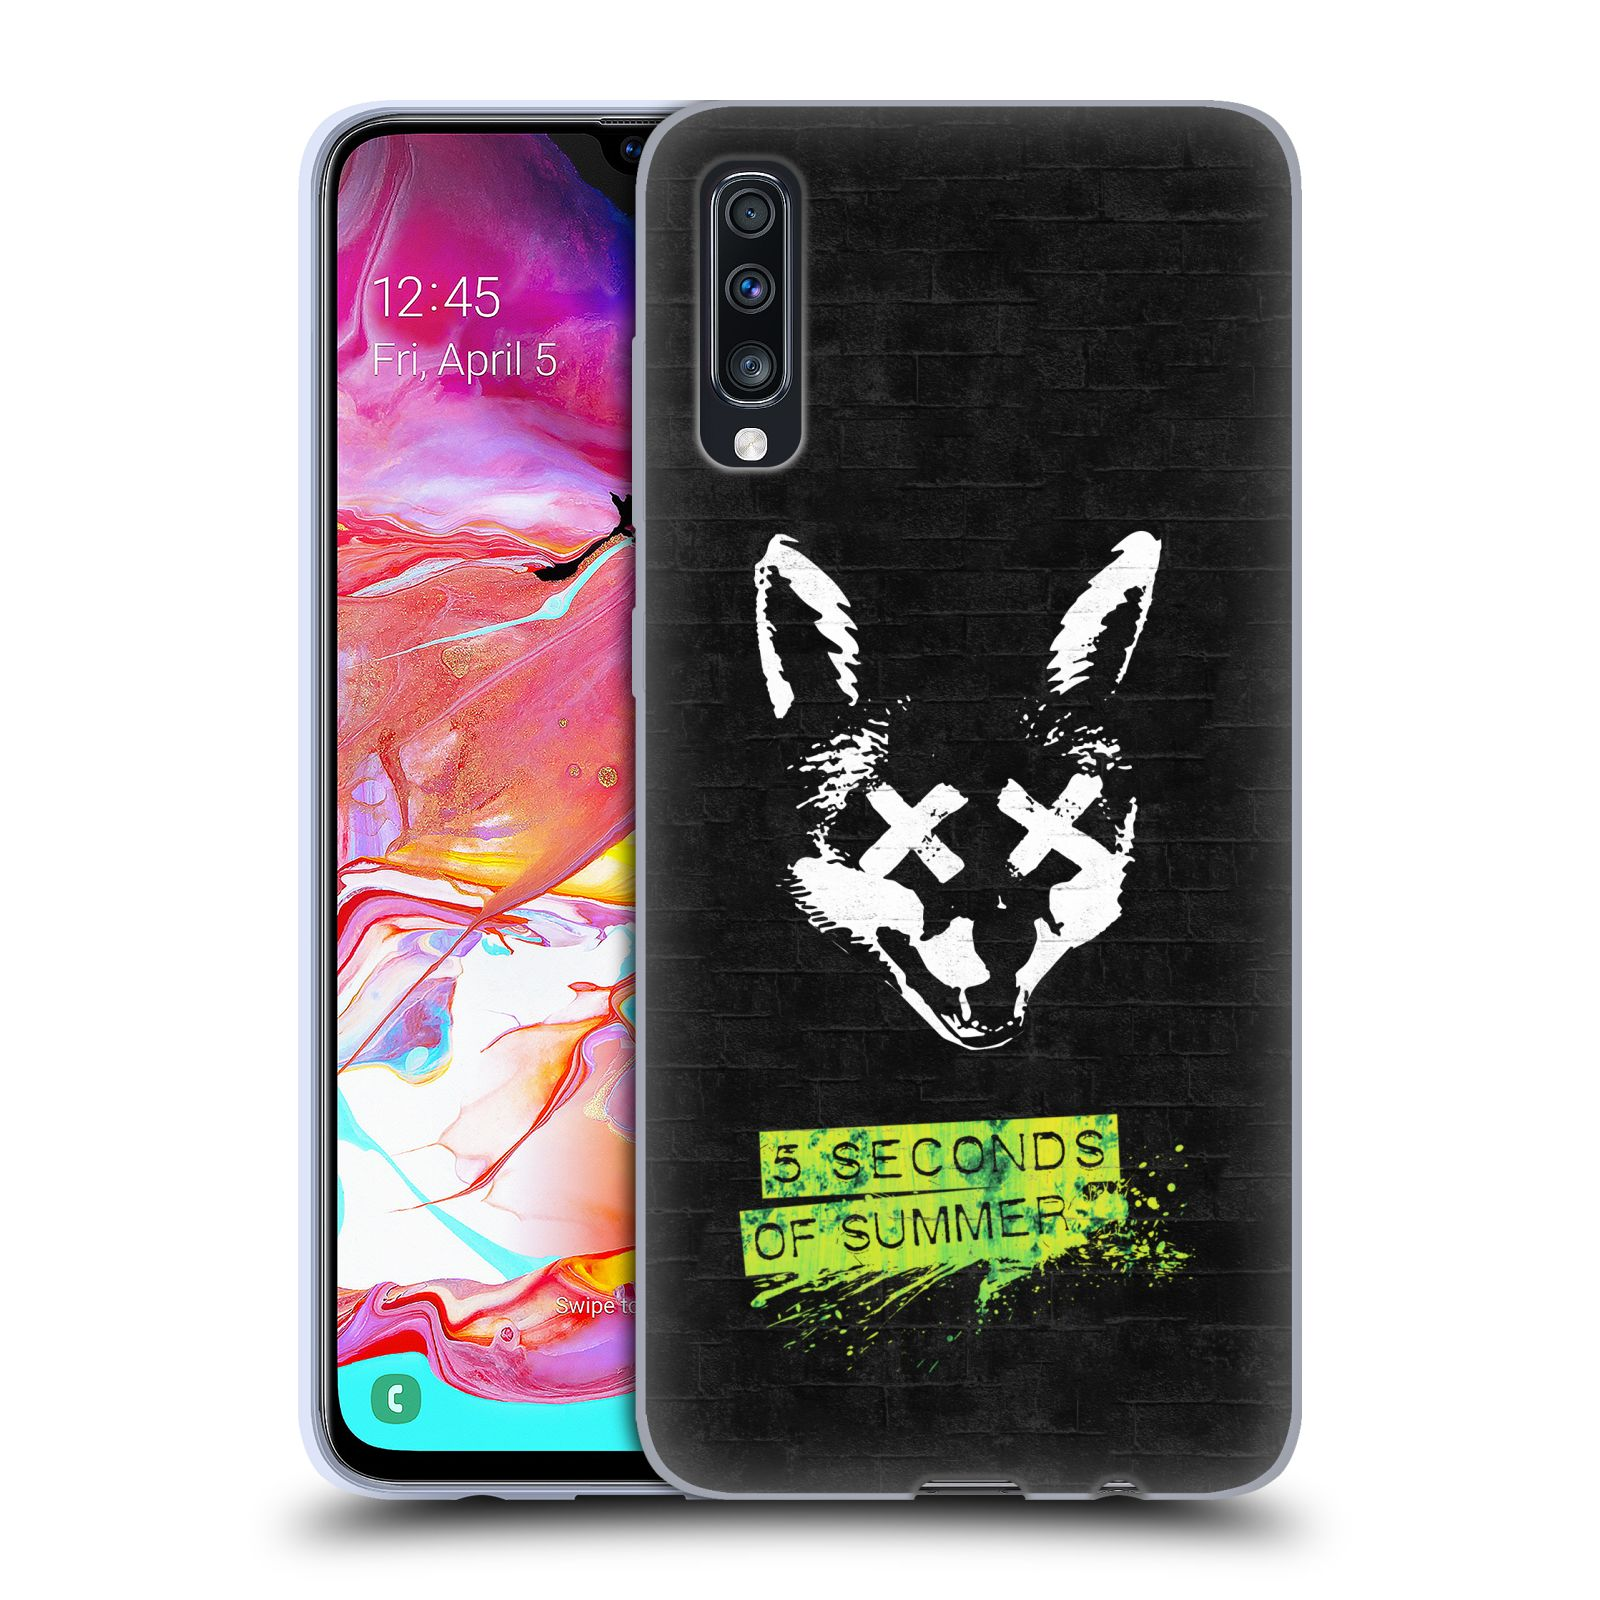 Silikonové pouzdro na mobil Samsung Galaxy A70 - Head Case - 5 Seconds of Summer - Fox